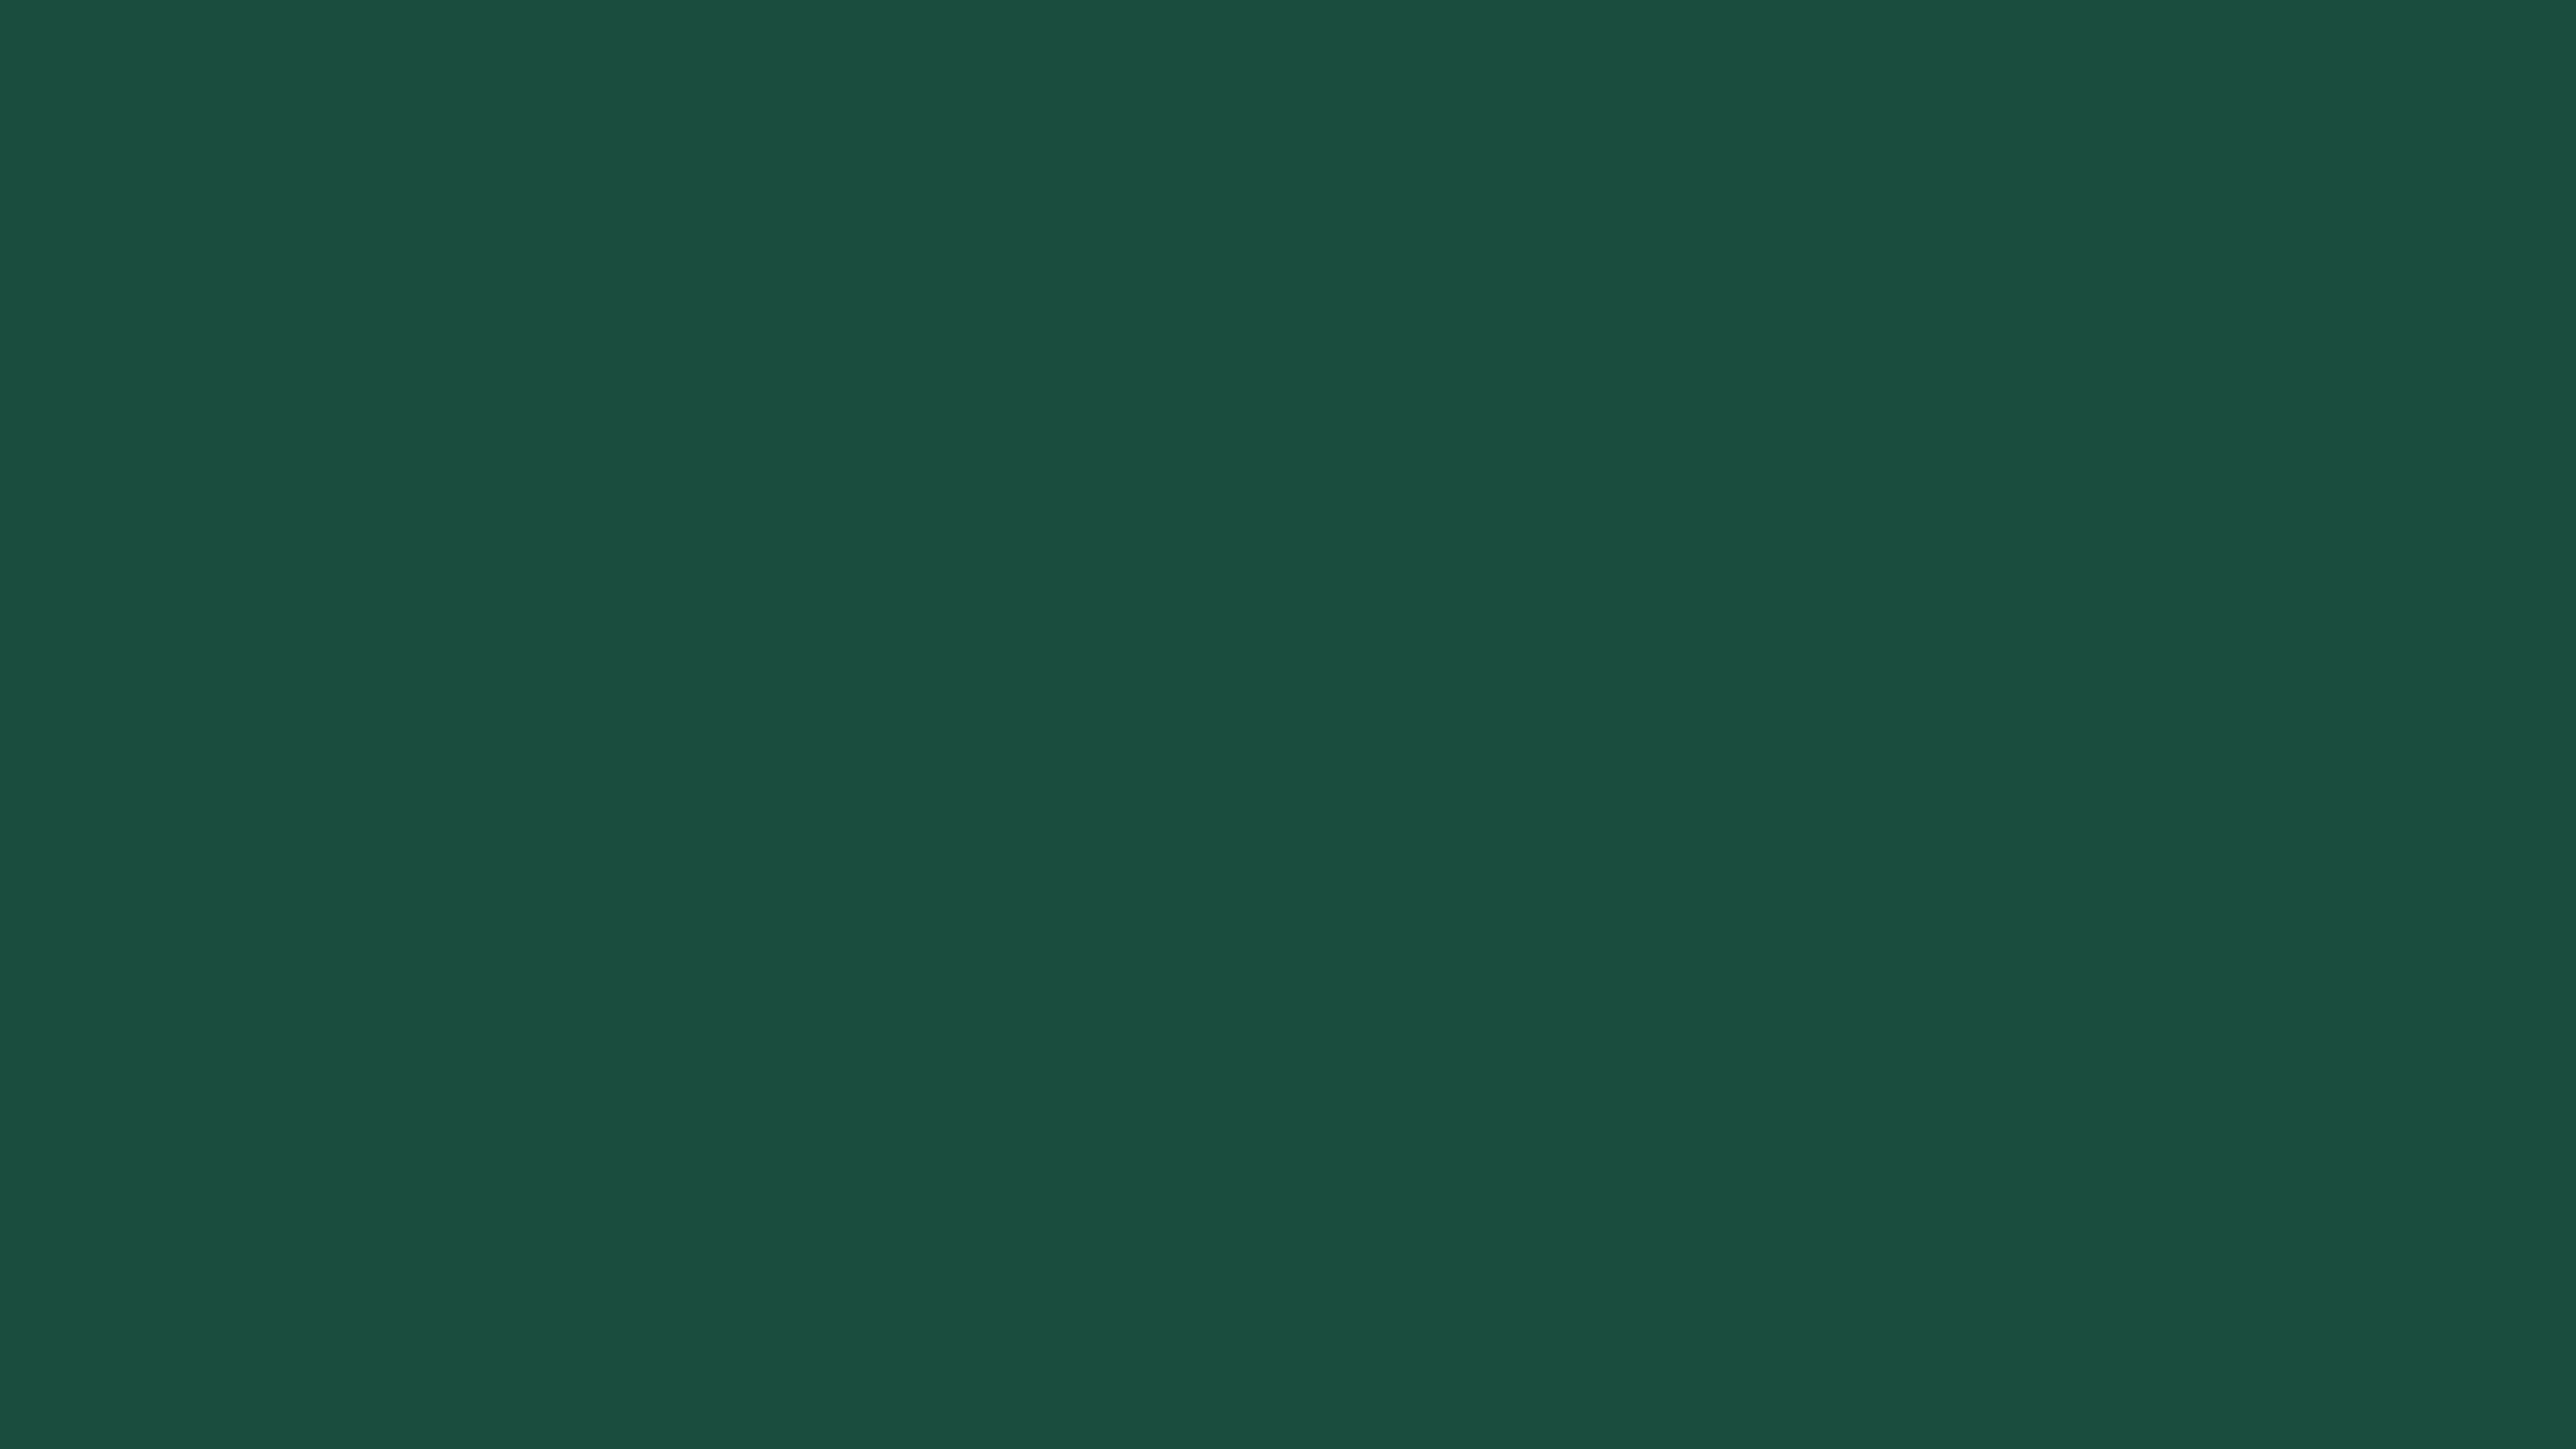 4096x2304 Brunswick Green Solid Color Background